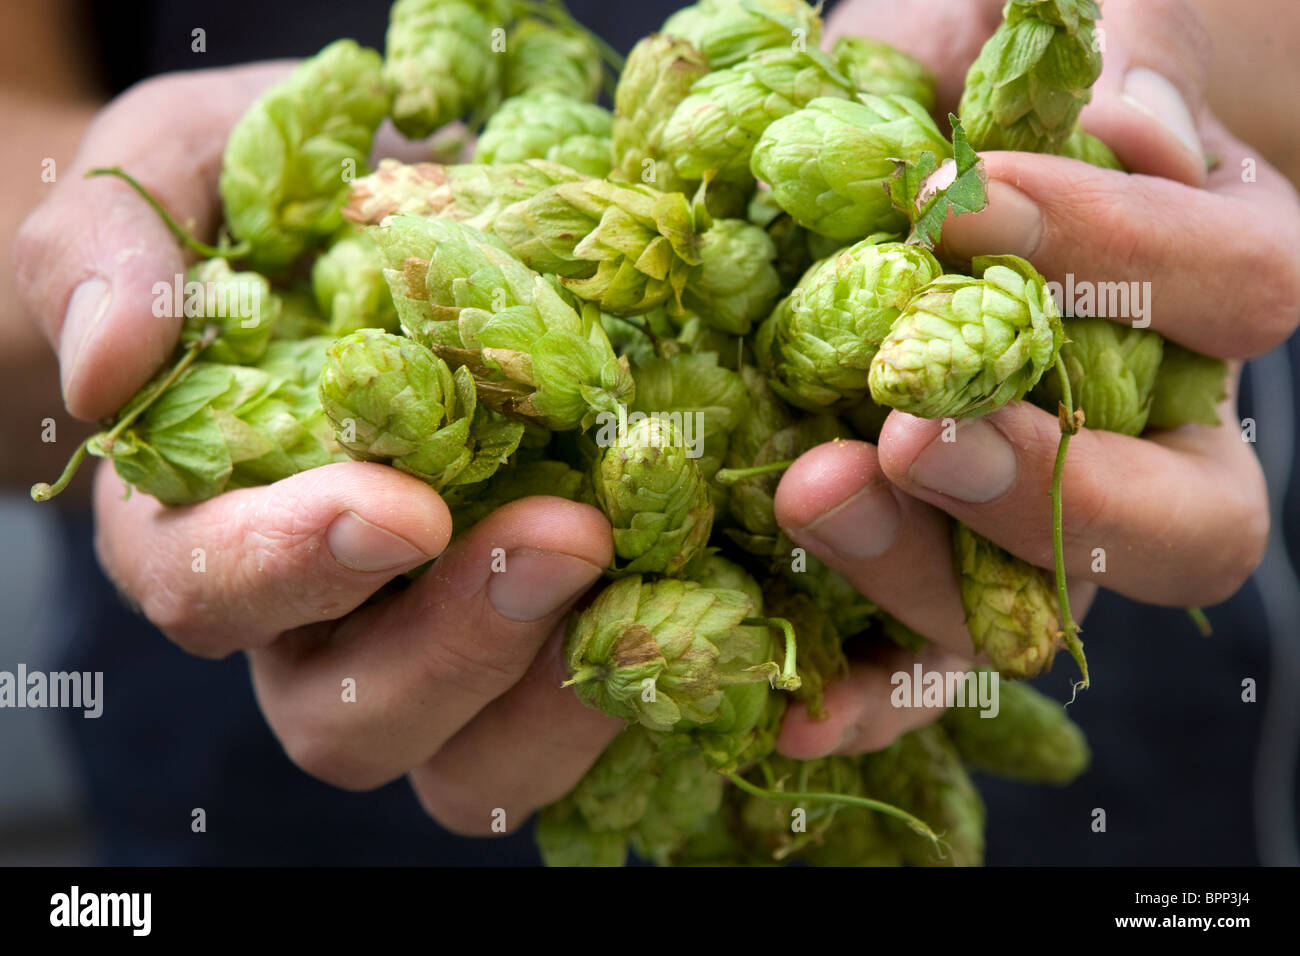 Close-up of a brewer holding freshly picked hops in both hands. - Stock Image